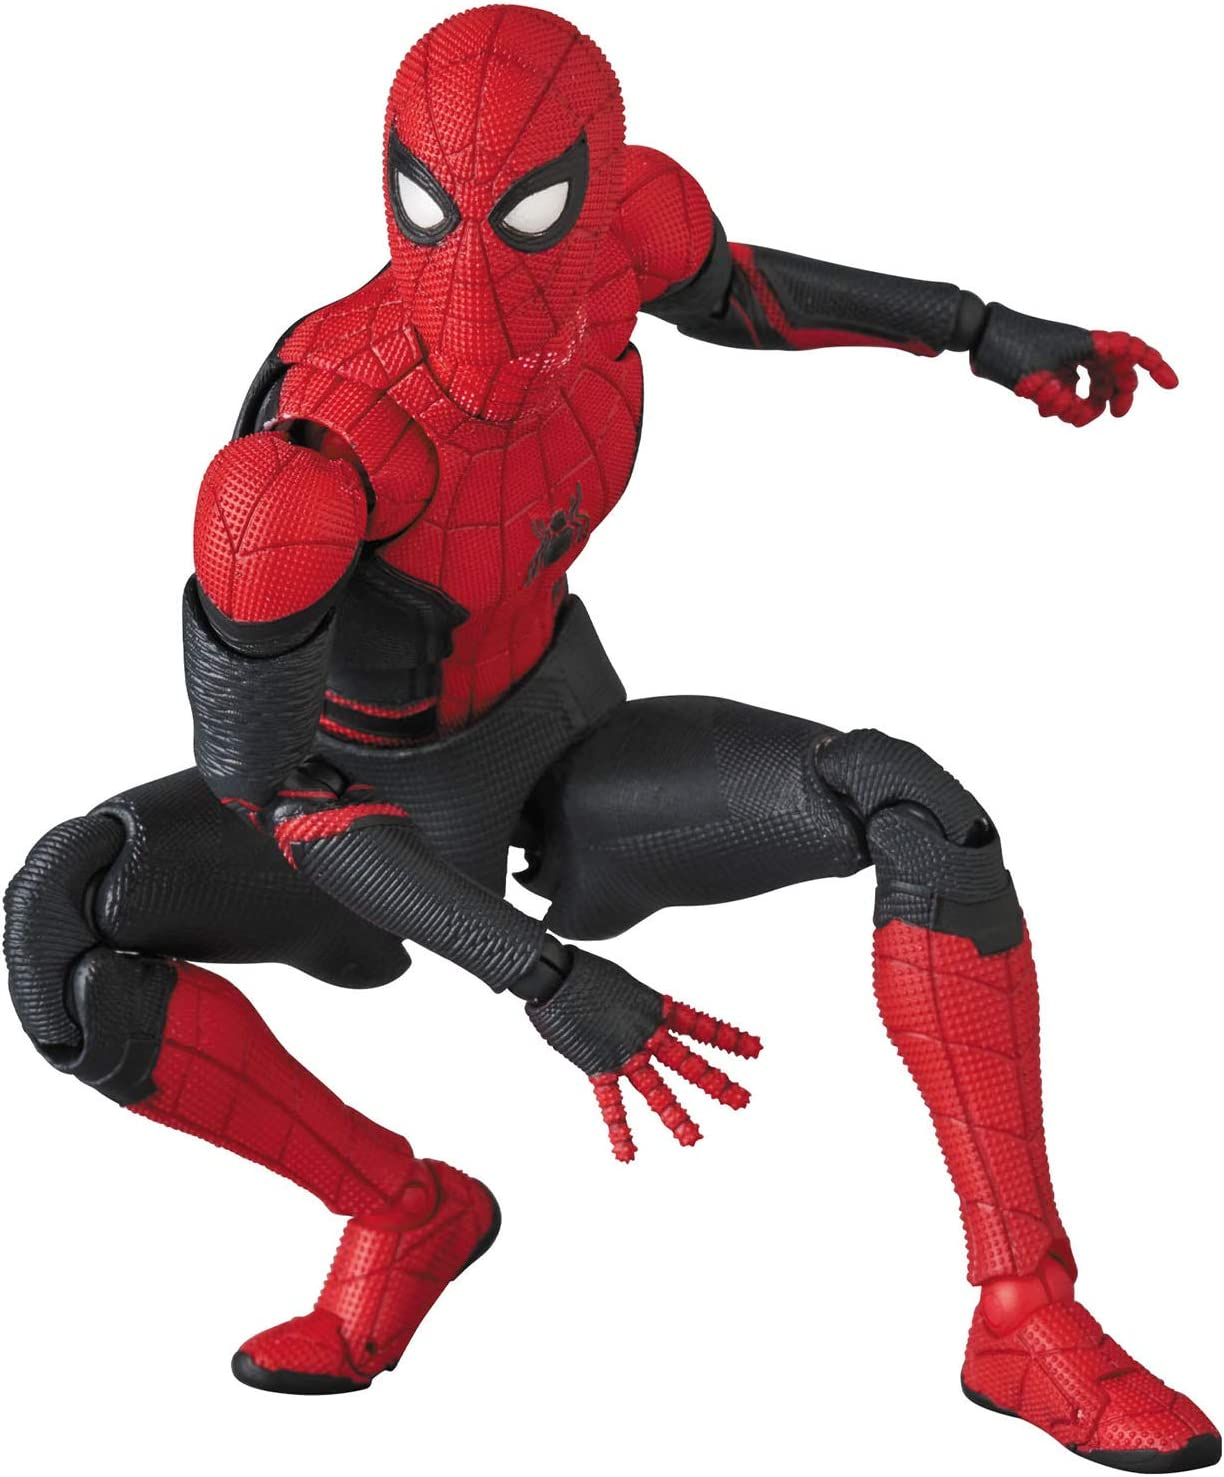 MAFEX Spider-Man Upgraded Suit Spider-Man: Far from Home Action Figure No.113